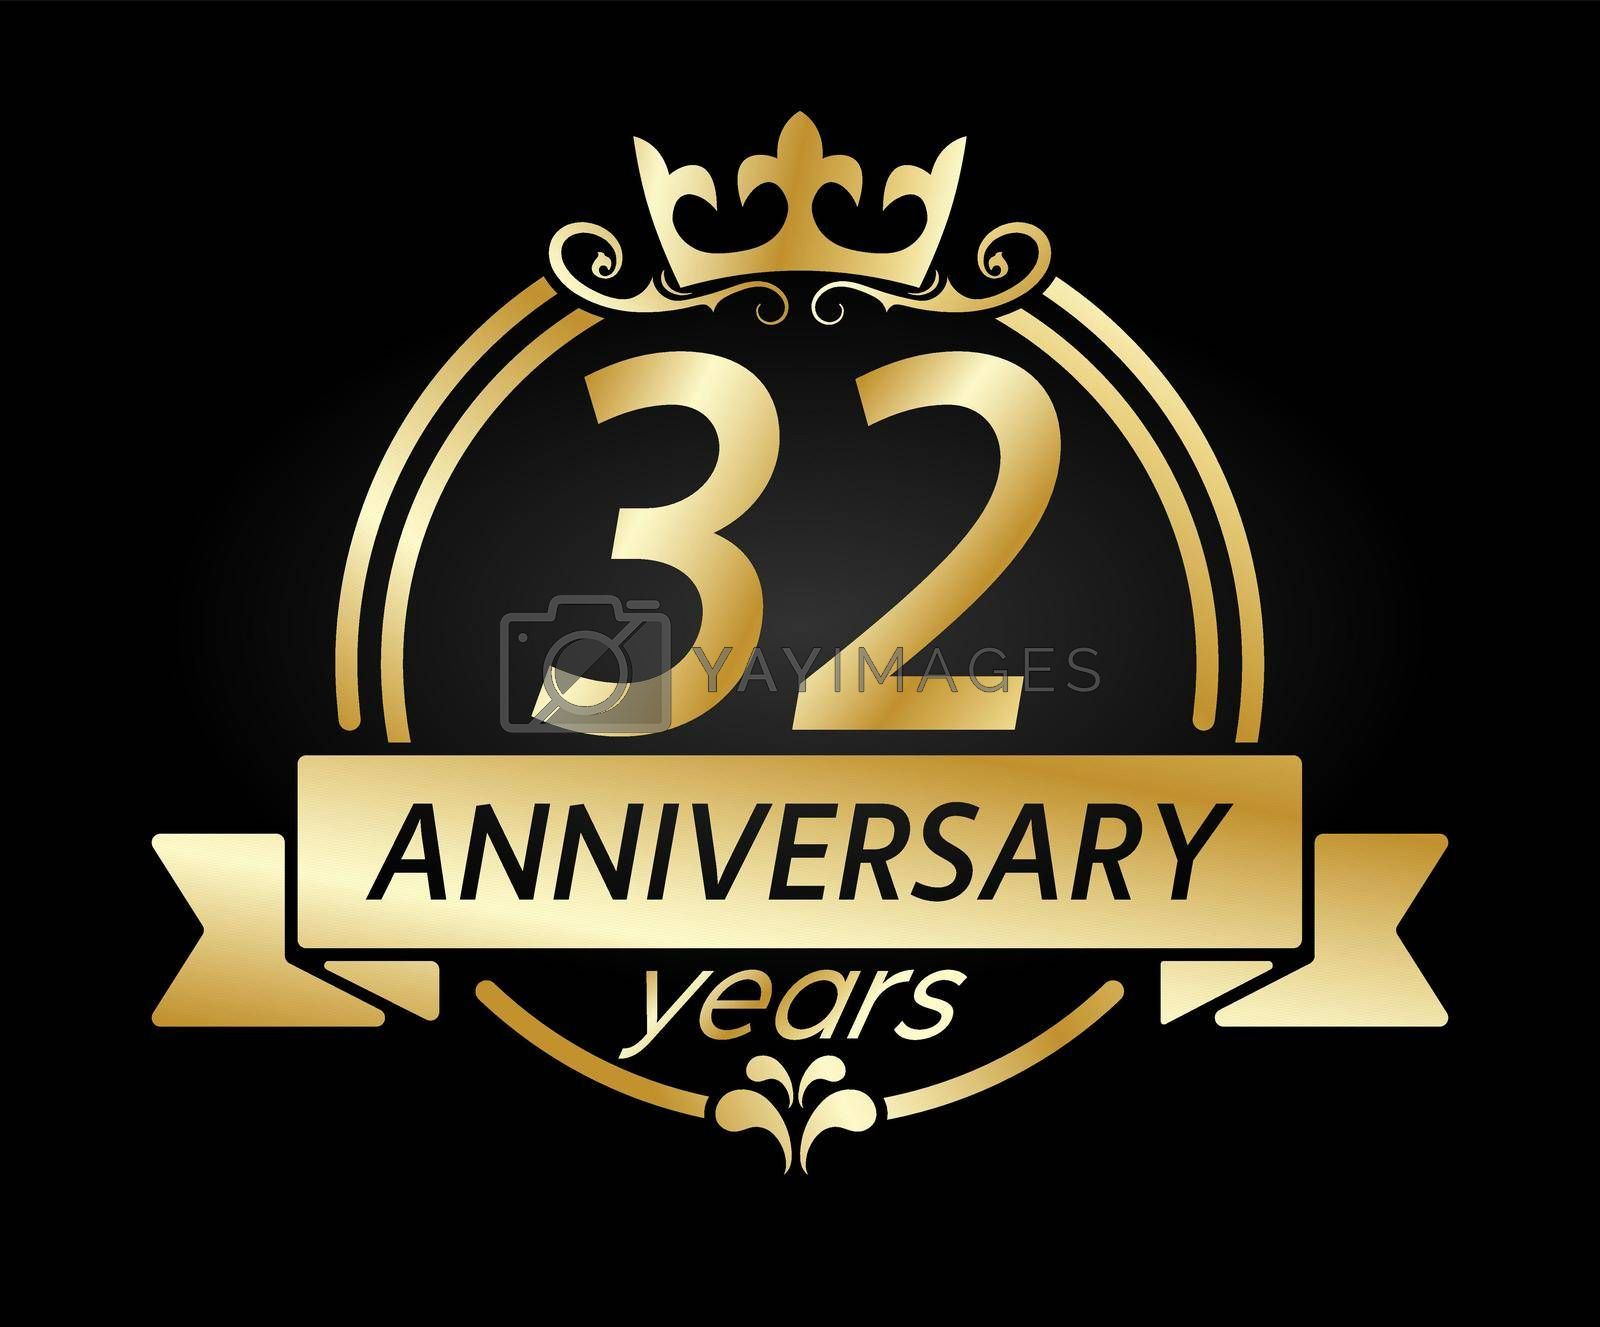 Royalty free image of 32 year anniversary. Gold round frame with crown and ribbon. Vector illustration for birthday, wedding or anniversary greetings, for creative design by Grommik